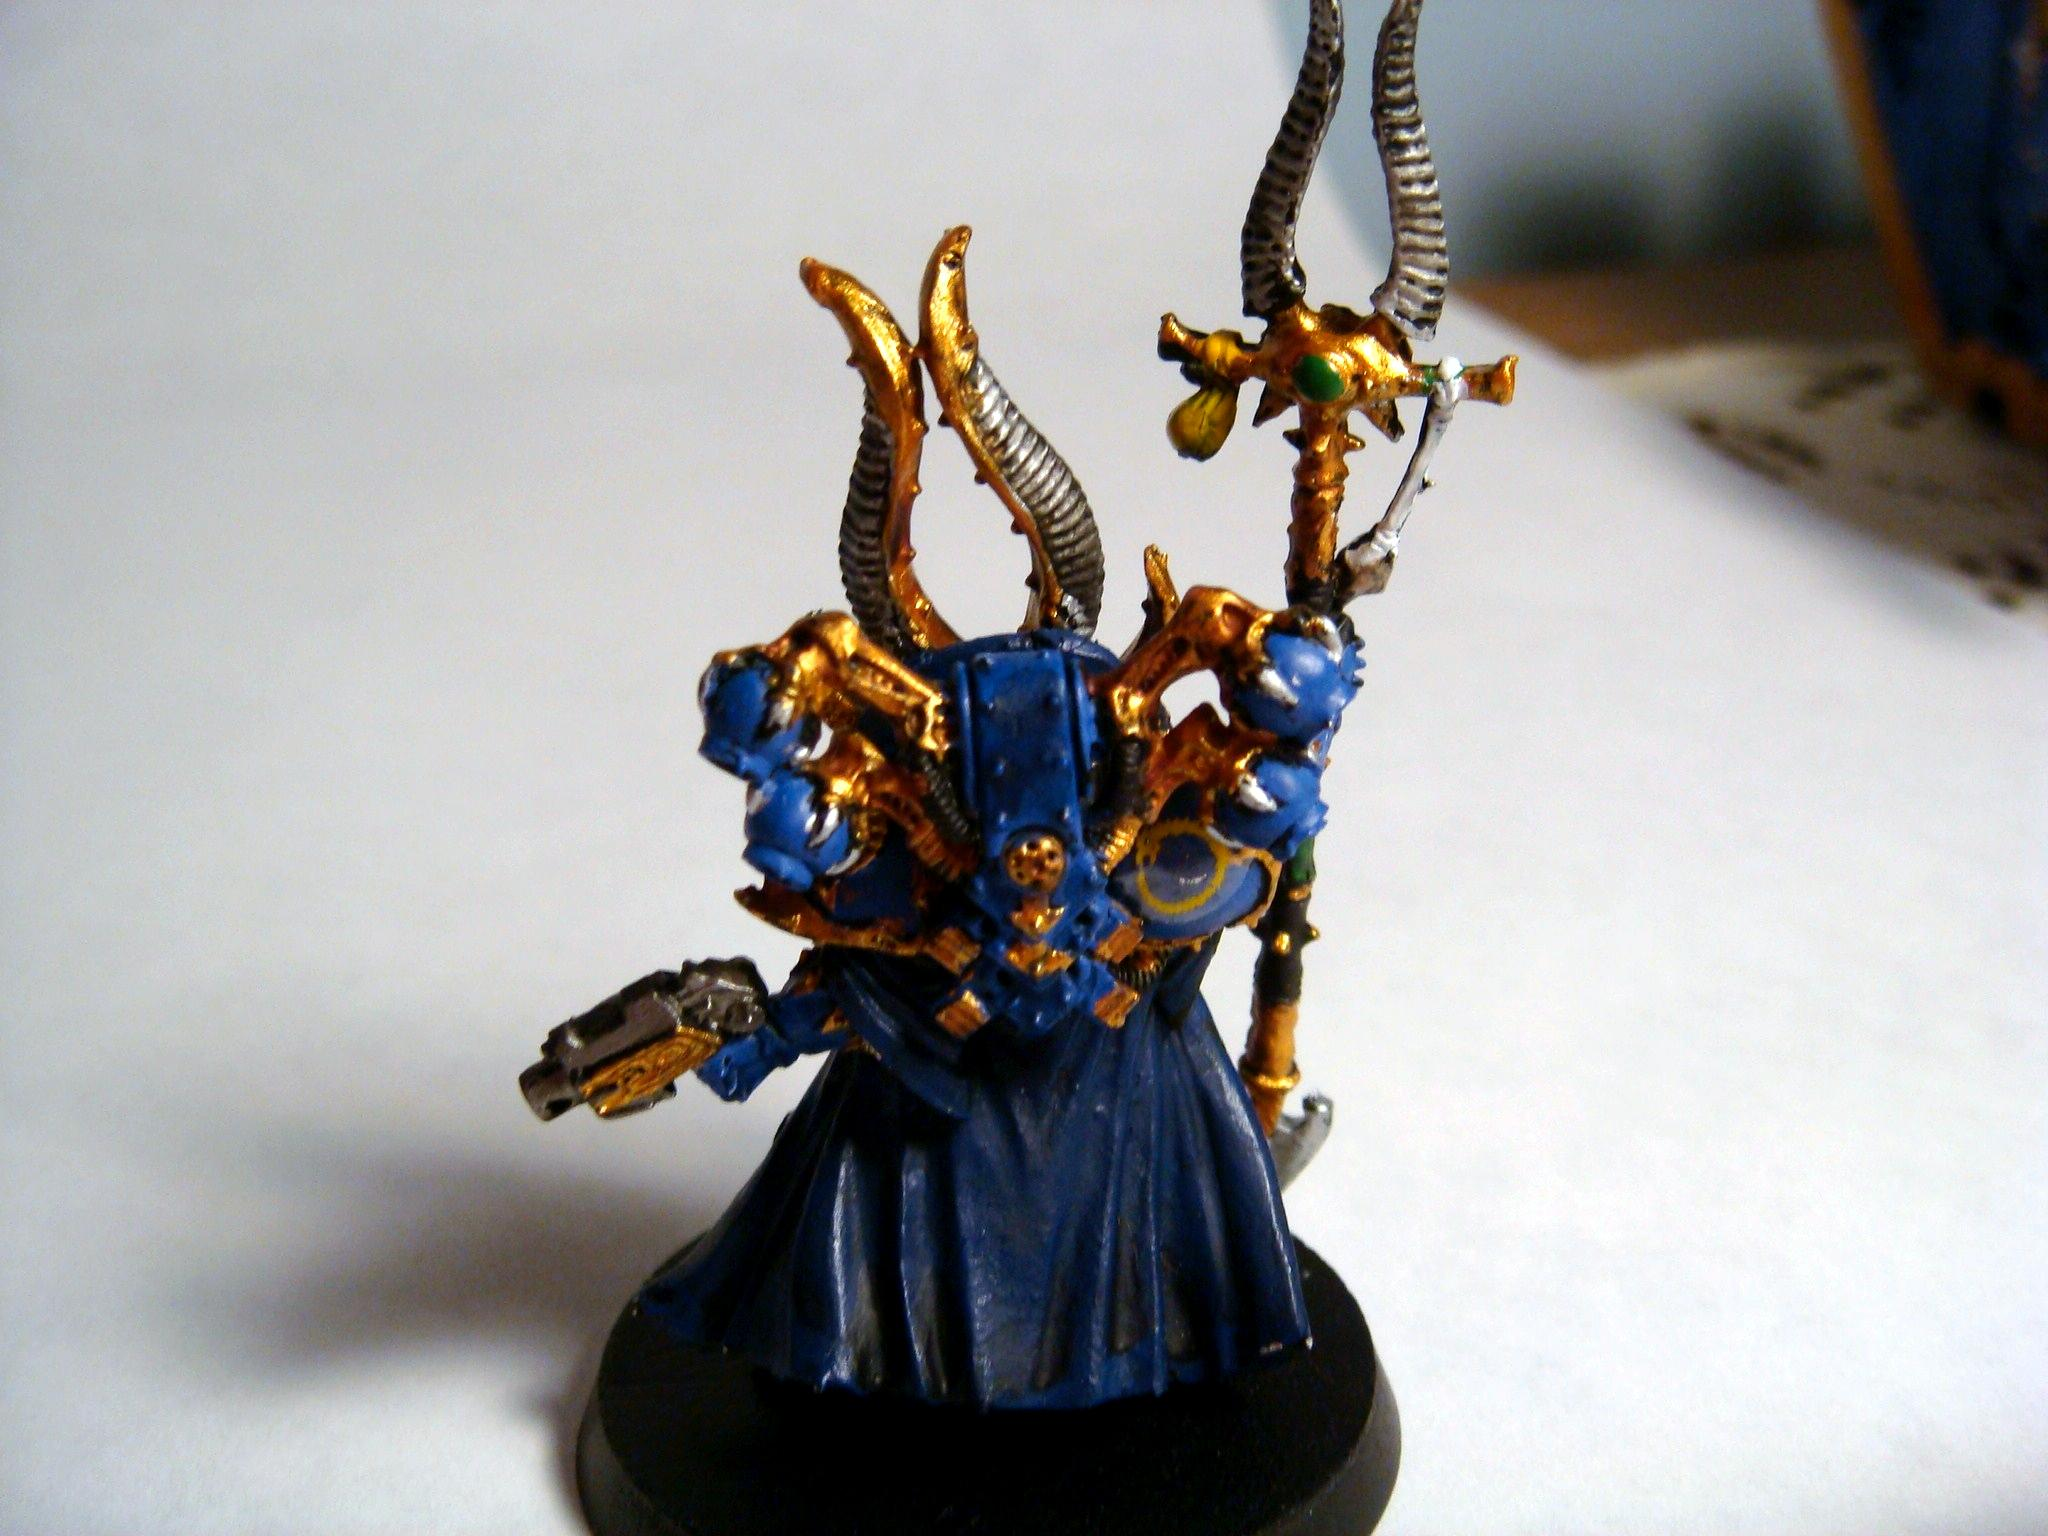 Ahriman, Chaos, Chaos Space Marines, Sorcerer, Thousand Sons